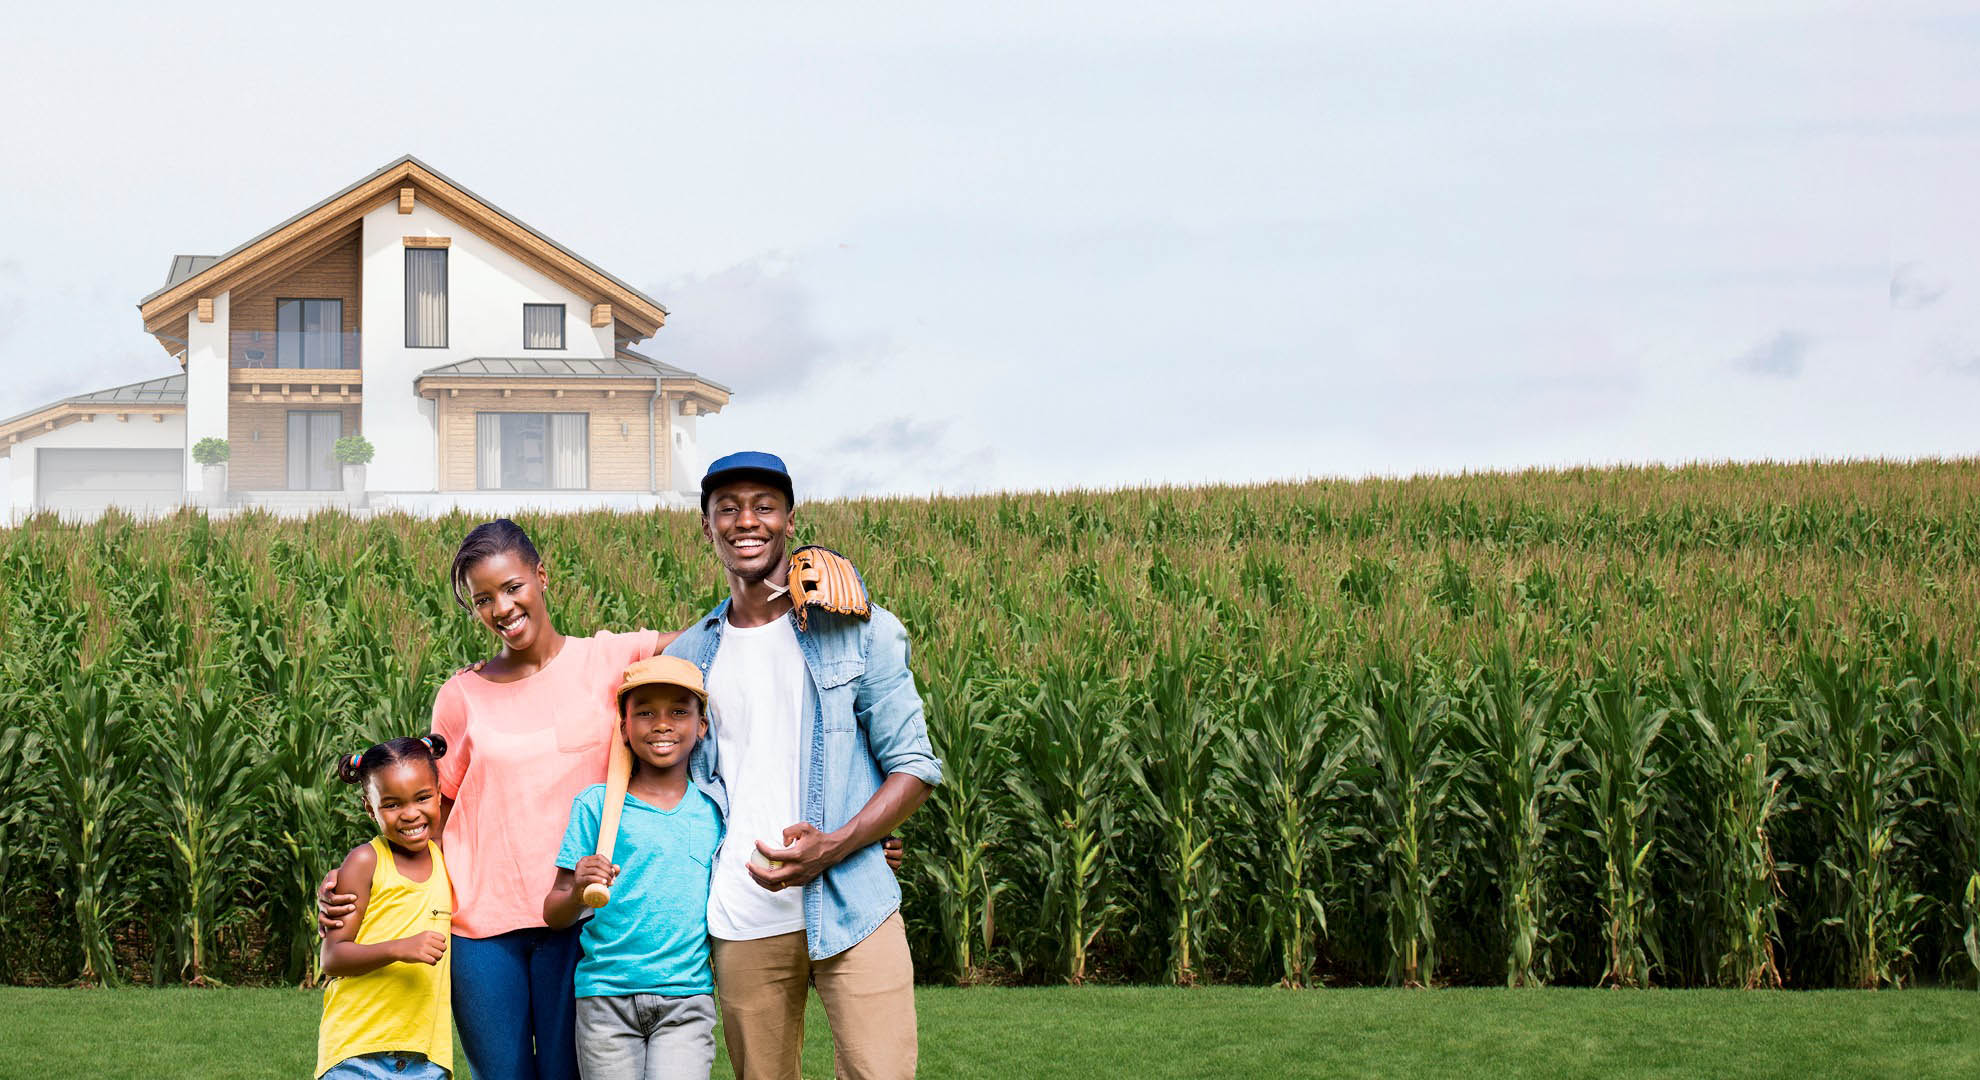 Family standing in corn field with baseball equipment with newly built home in the background